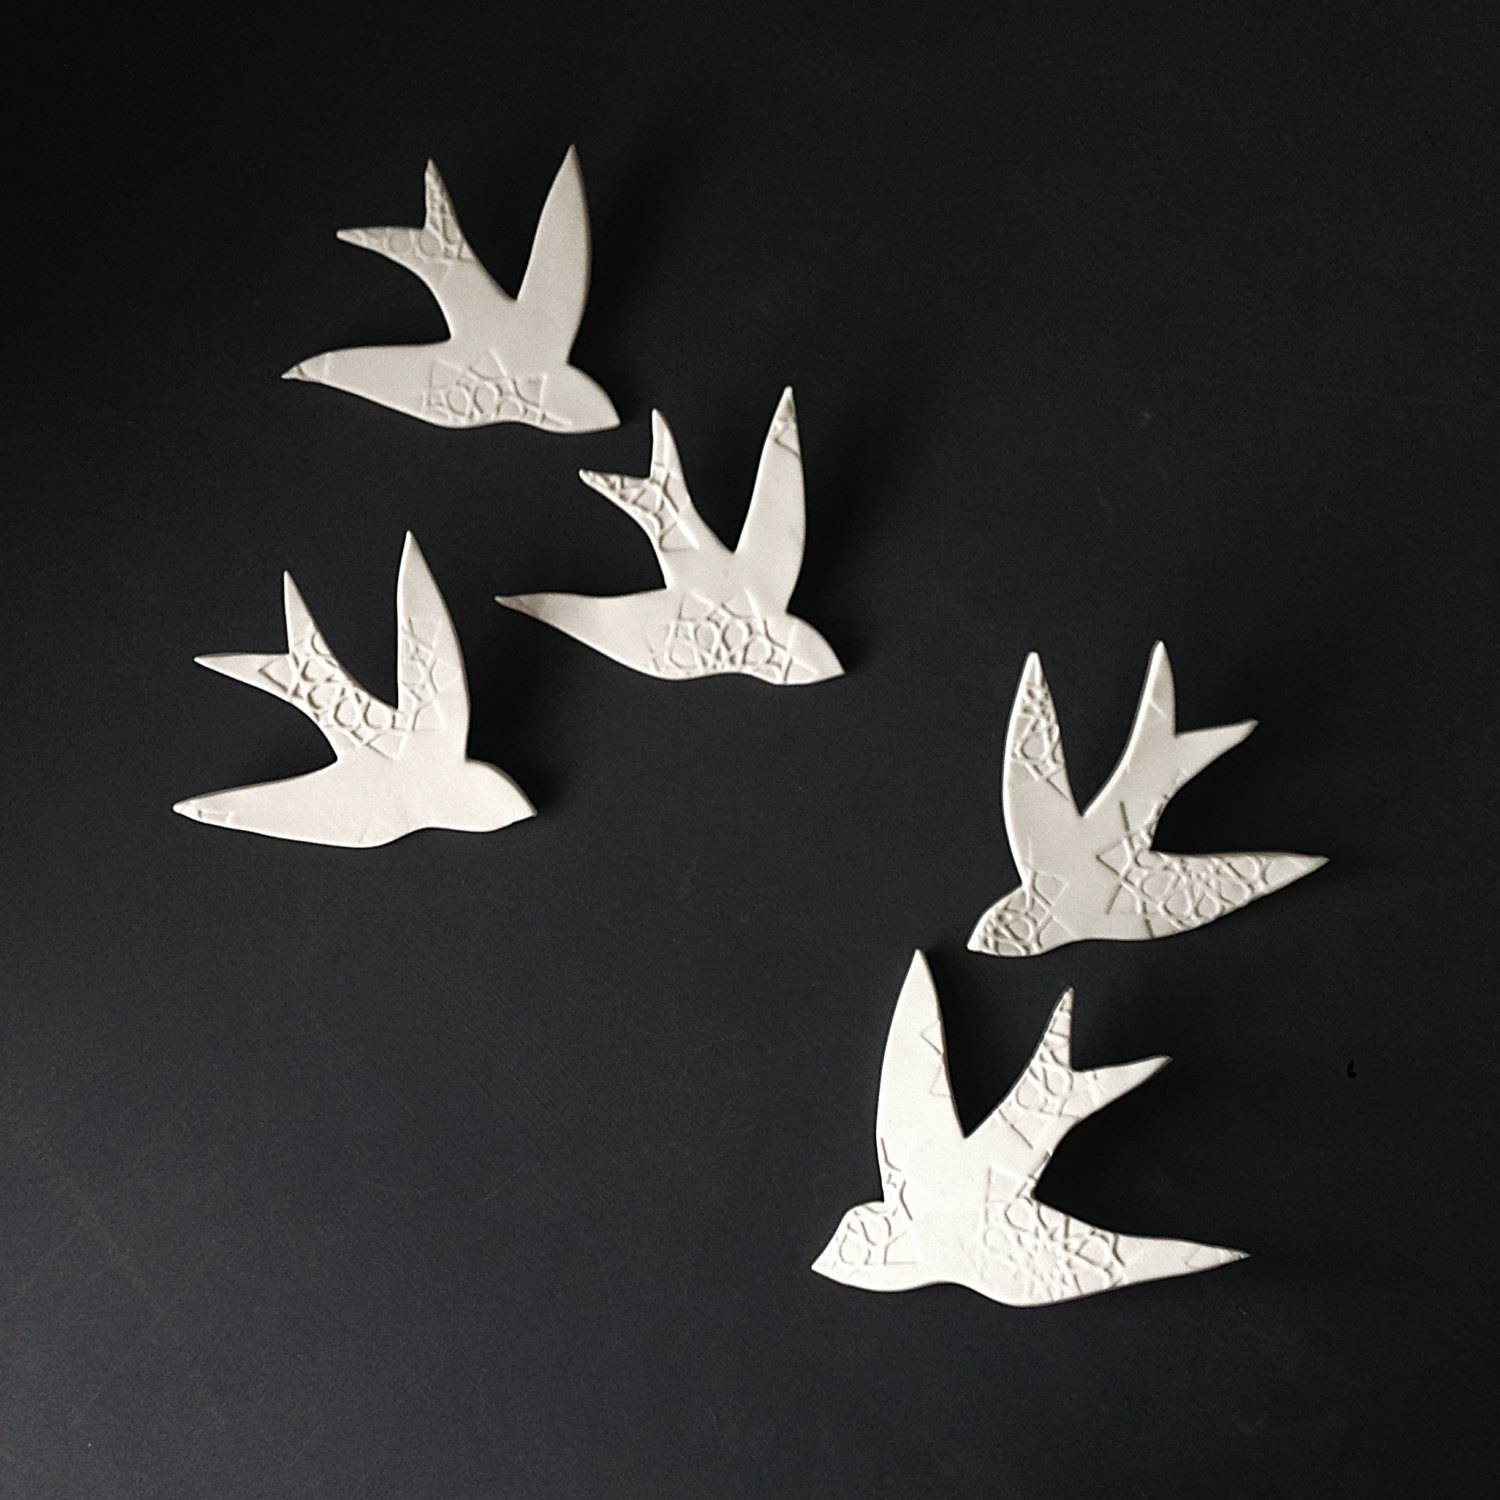 Wall Art Swallows Over Morocco White Porcelain Bird Wall Inside 2018 Ceramic Bird Wall Art (View 6 of 30)